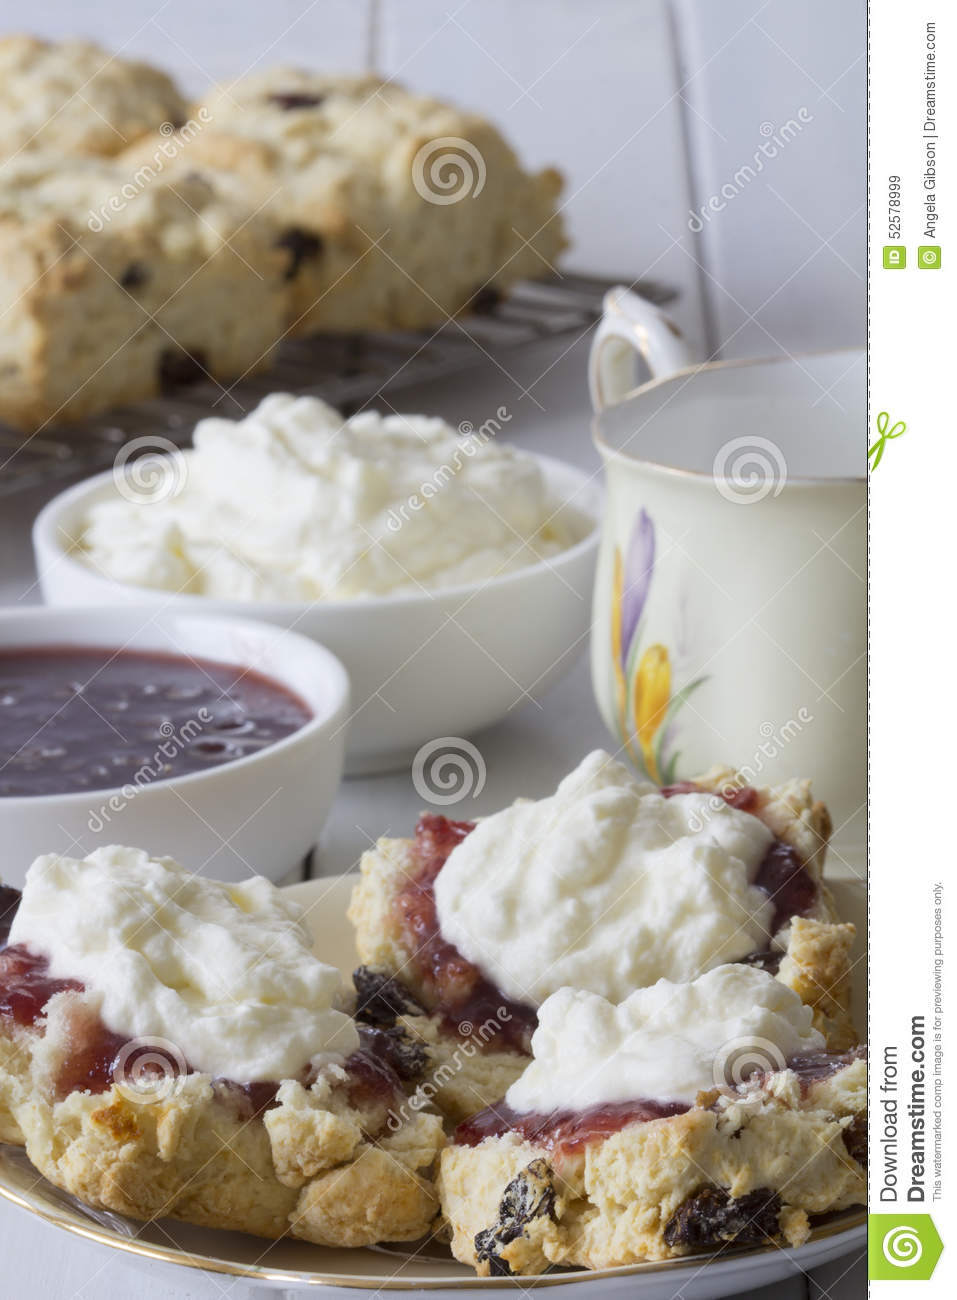 Sultana Scones with Jam and Cream and Tea